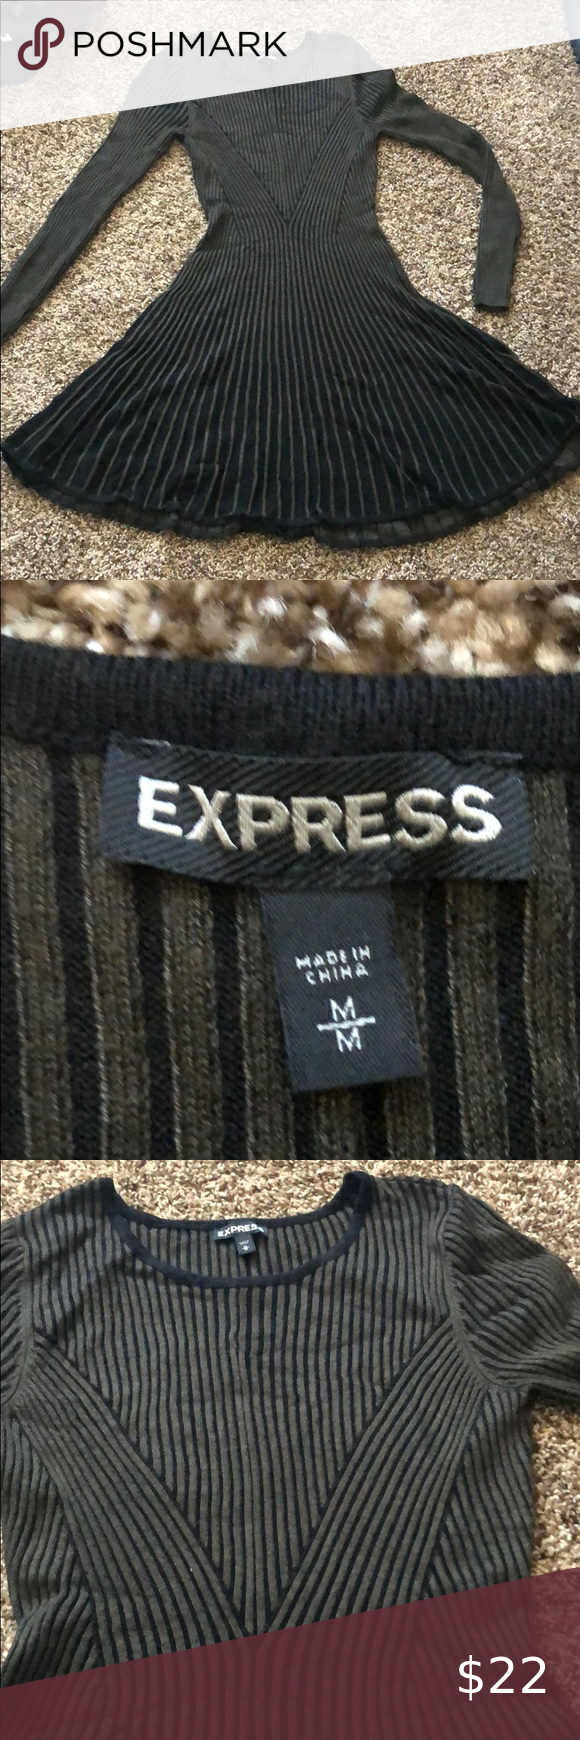 Express olive sweater dress